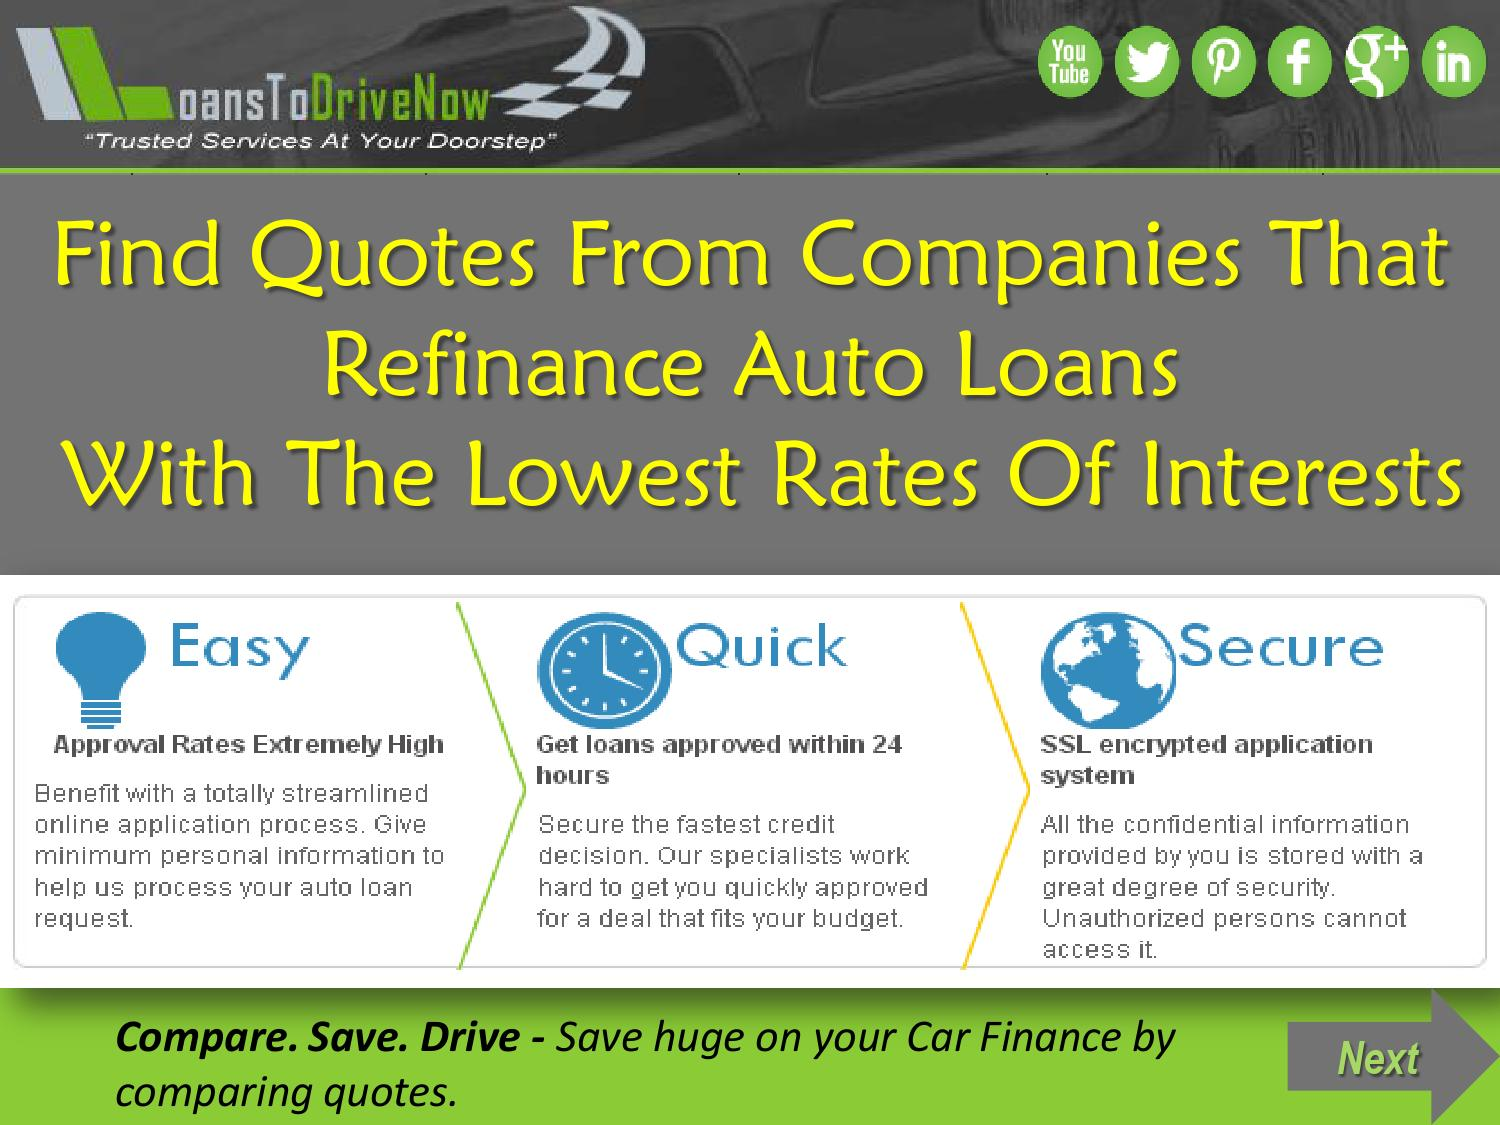 Get Best Companies To Refinance Auto Loan At Lowest Rates By James